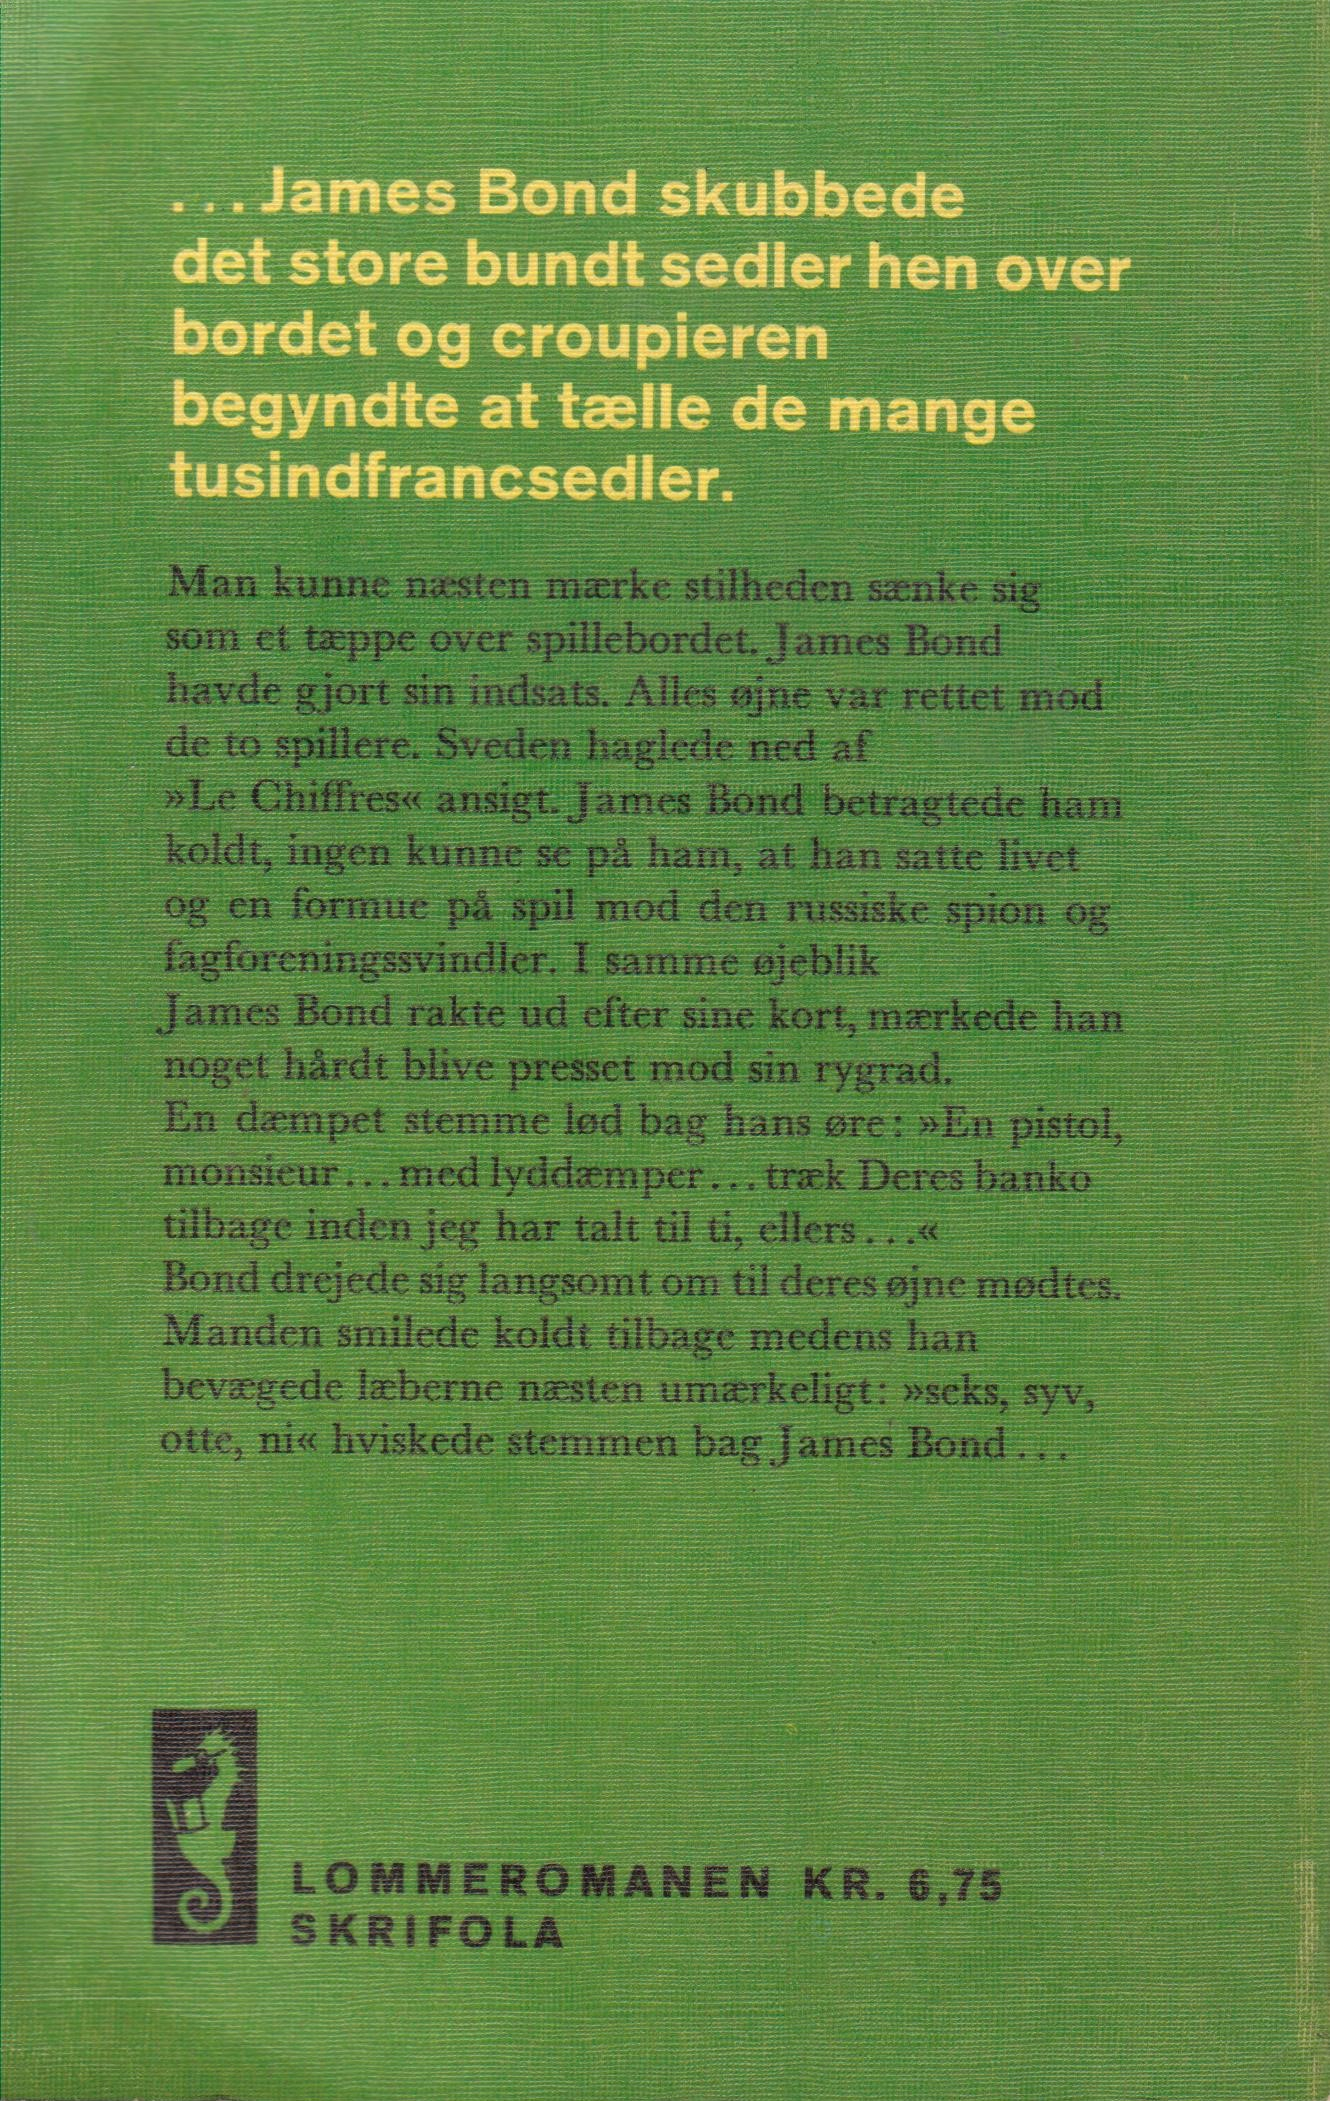 Banko for døden James Bond (Skrifola 1967) bagside